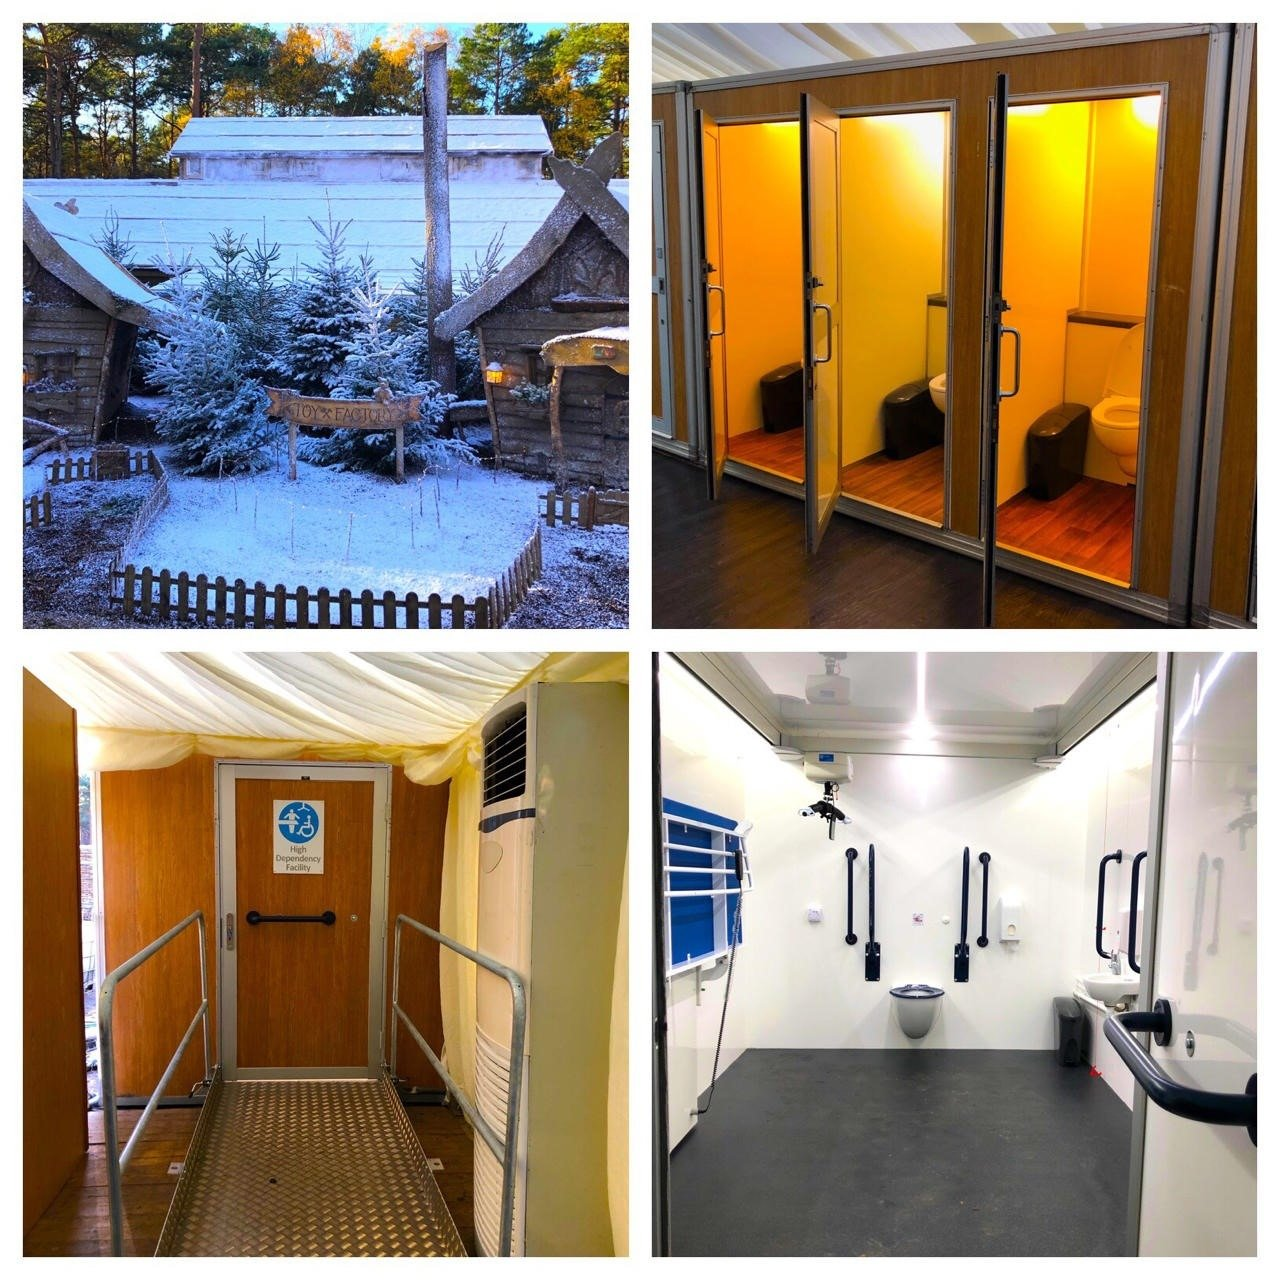 Lapland UK High Dependency Unit Rental Vacuum Toilet